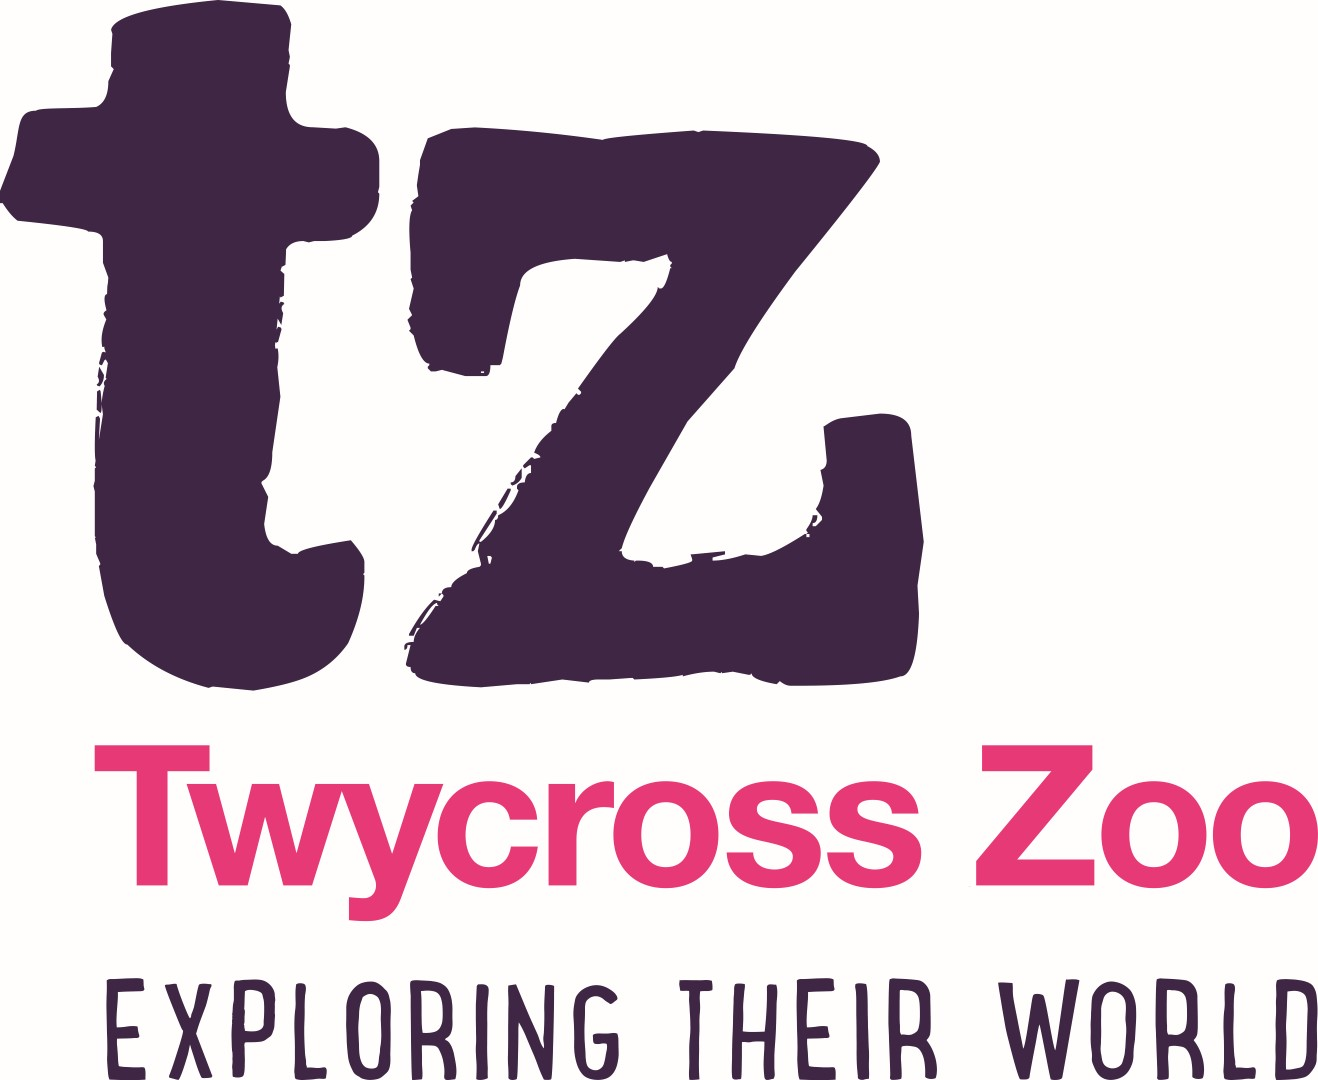 Twycross Zoo